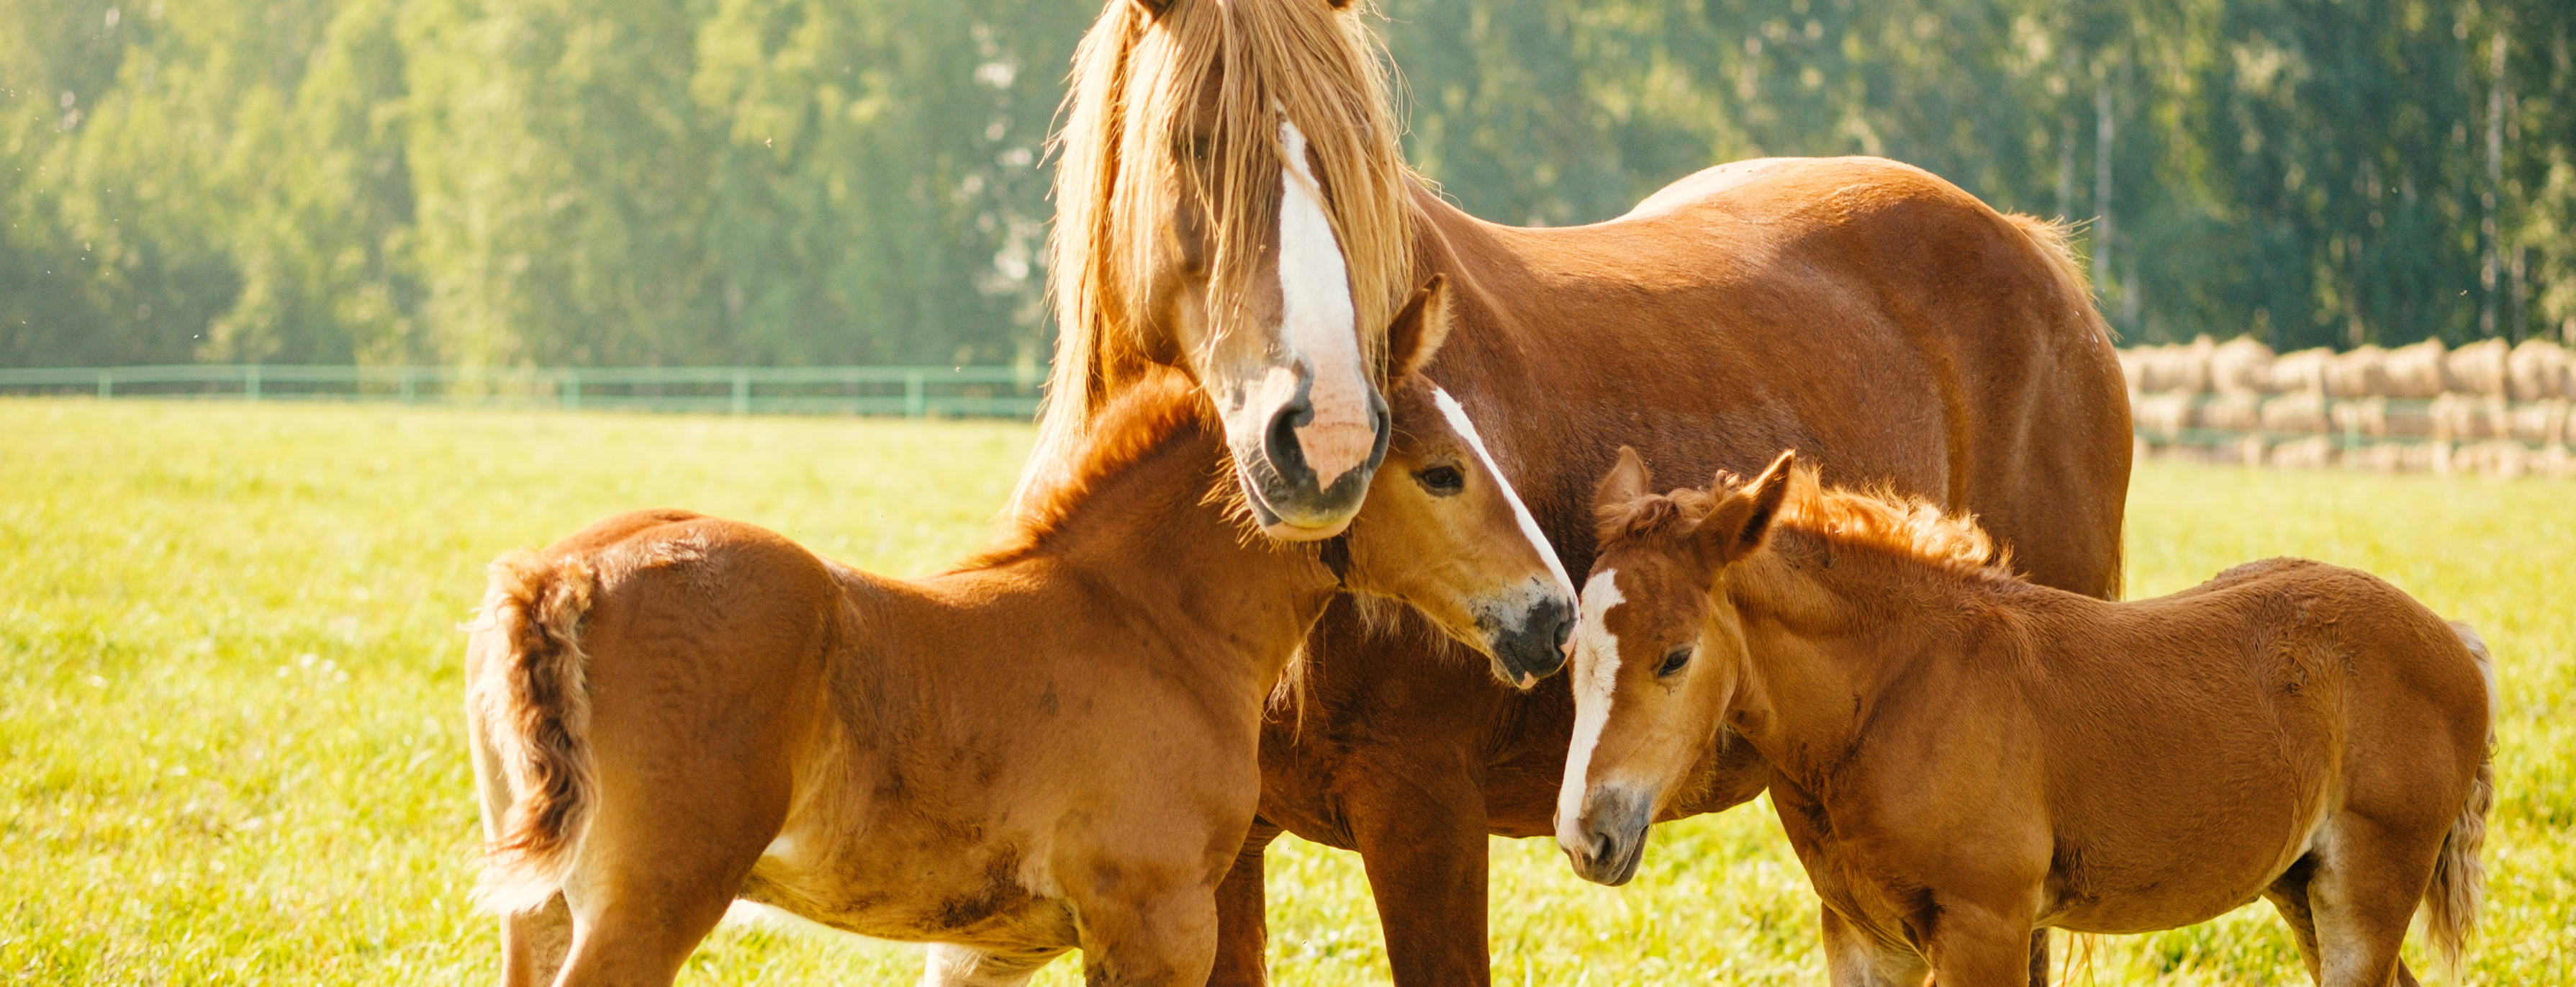 Every Bit Counts Small Landholders horses